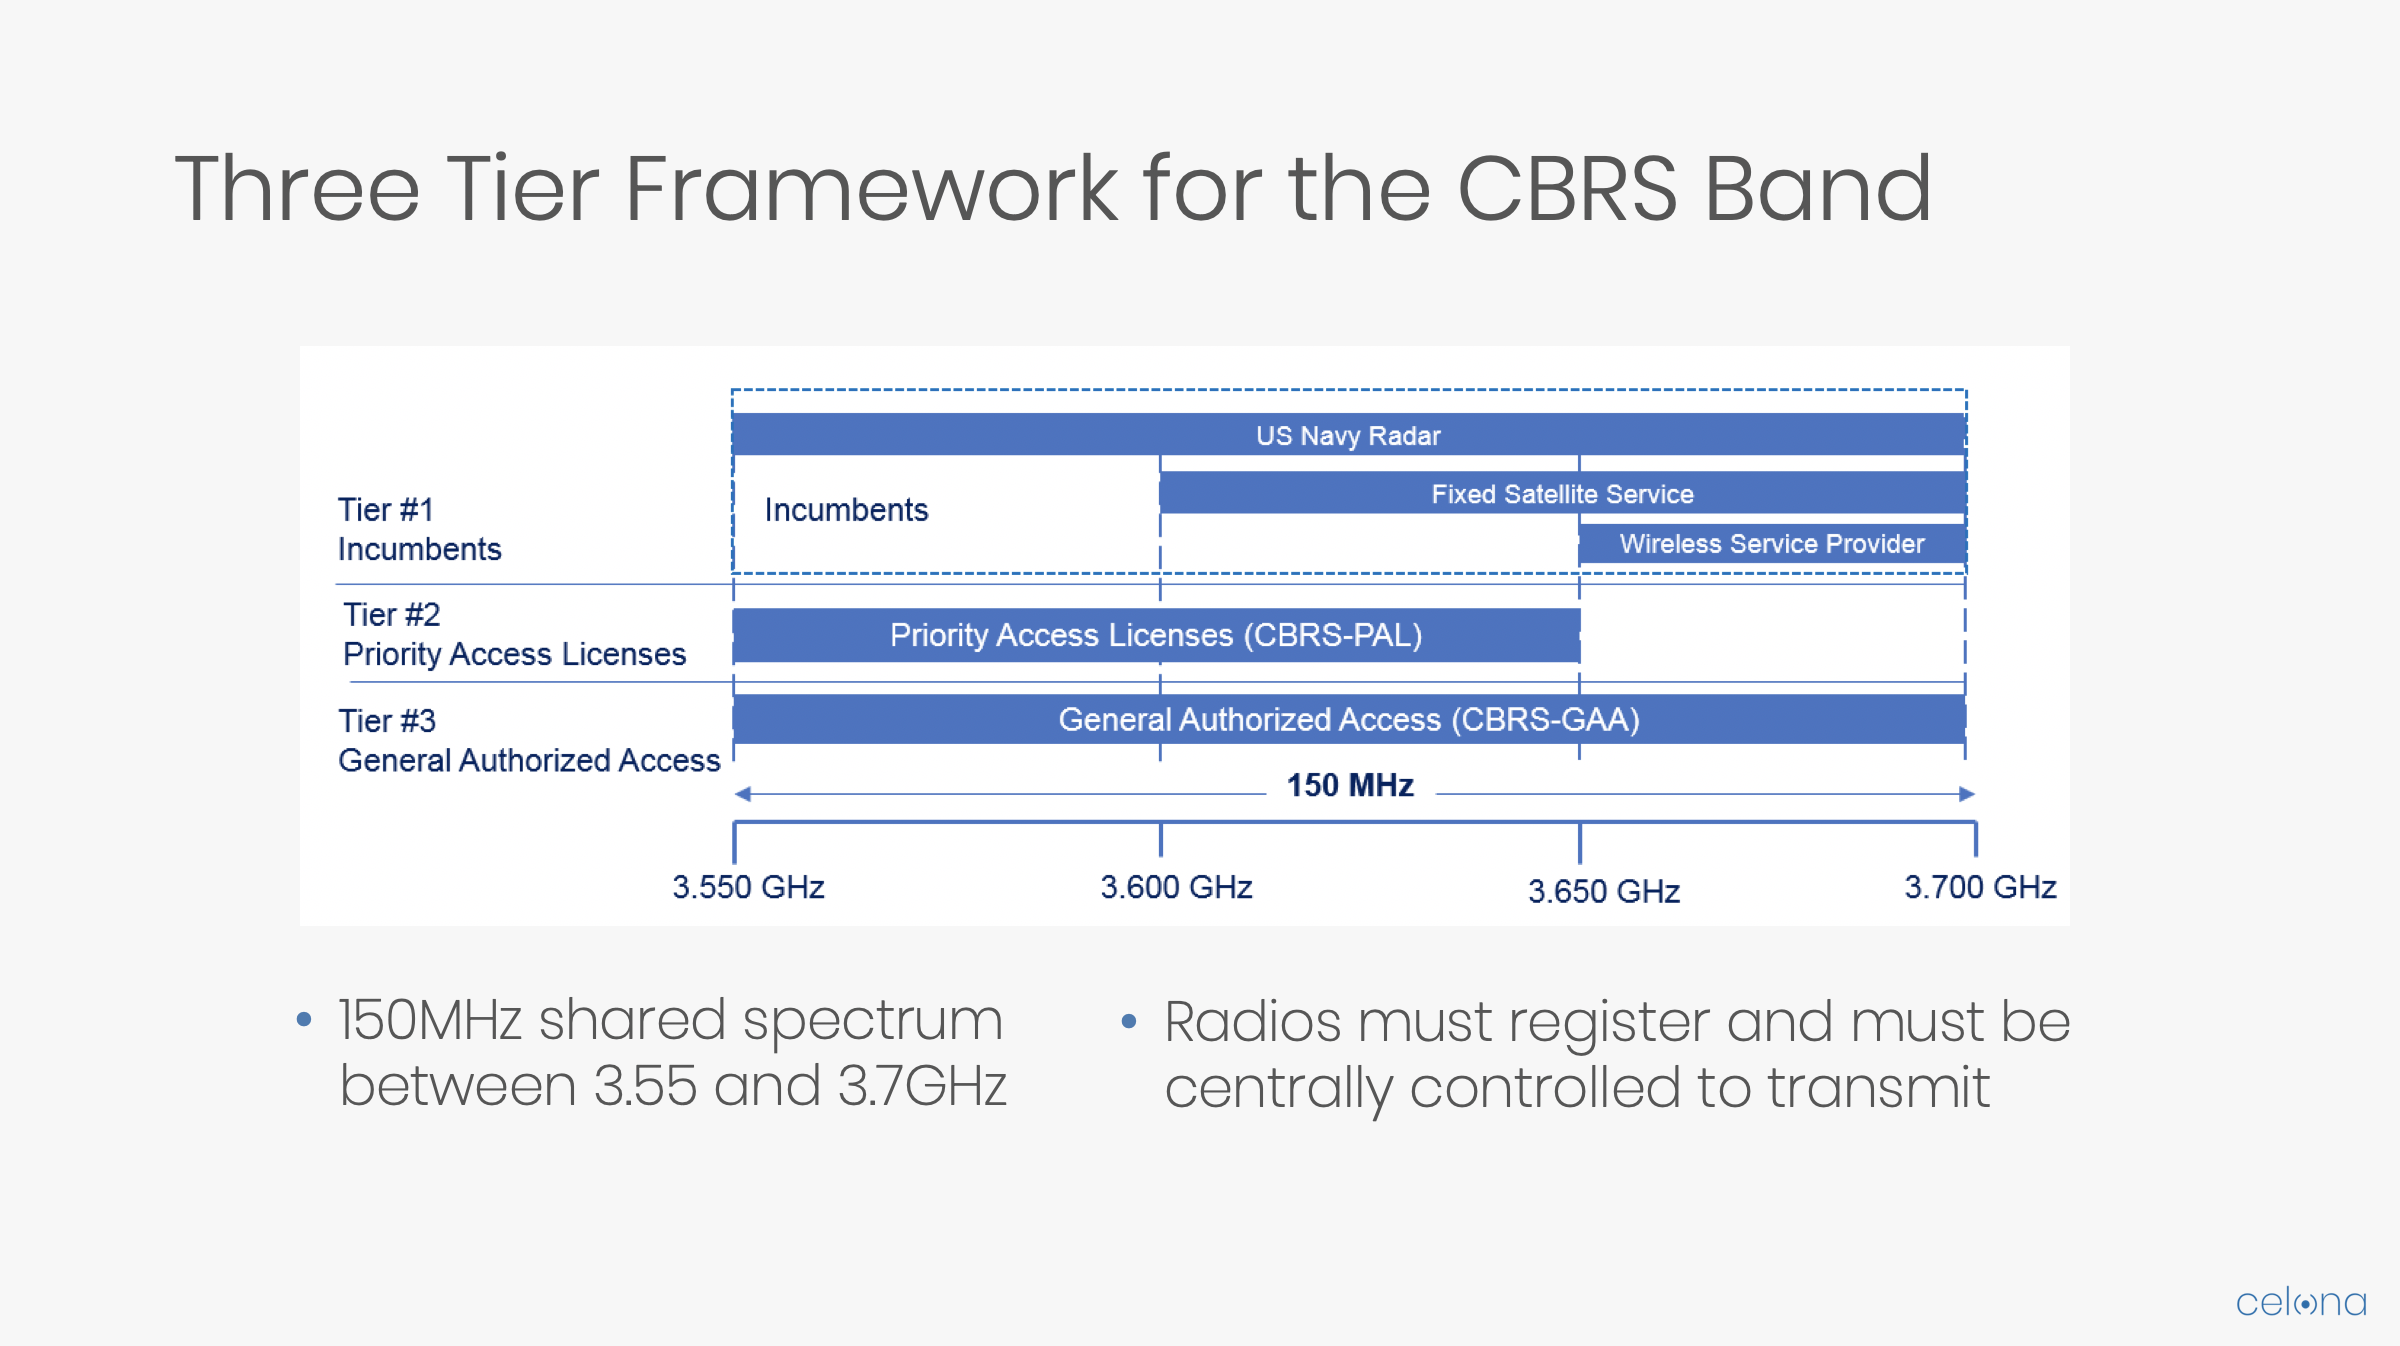 Three Tier Framework for the CBRS Band